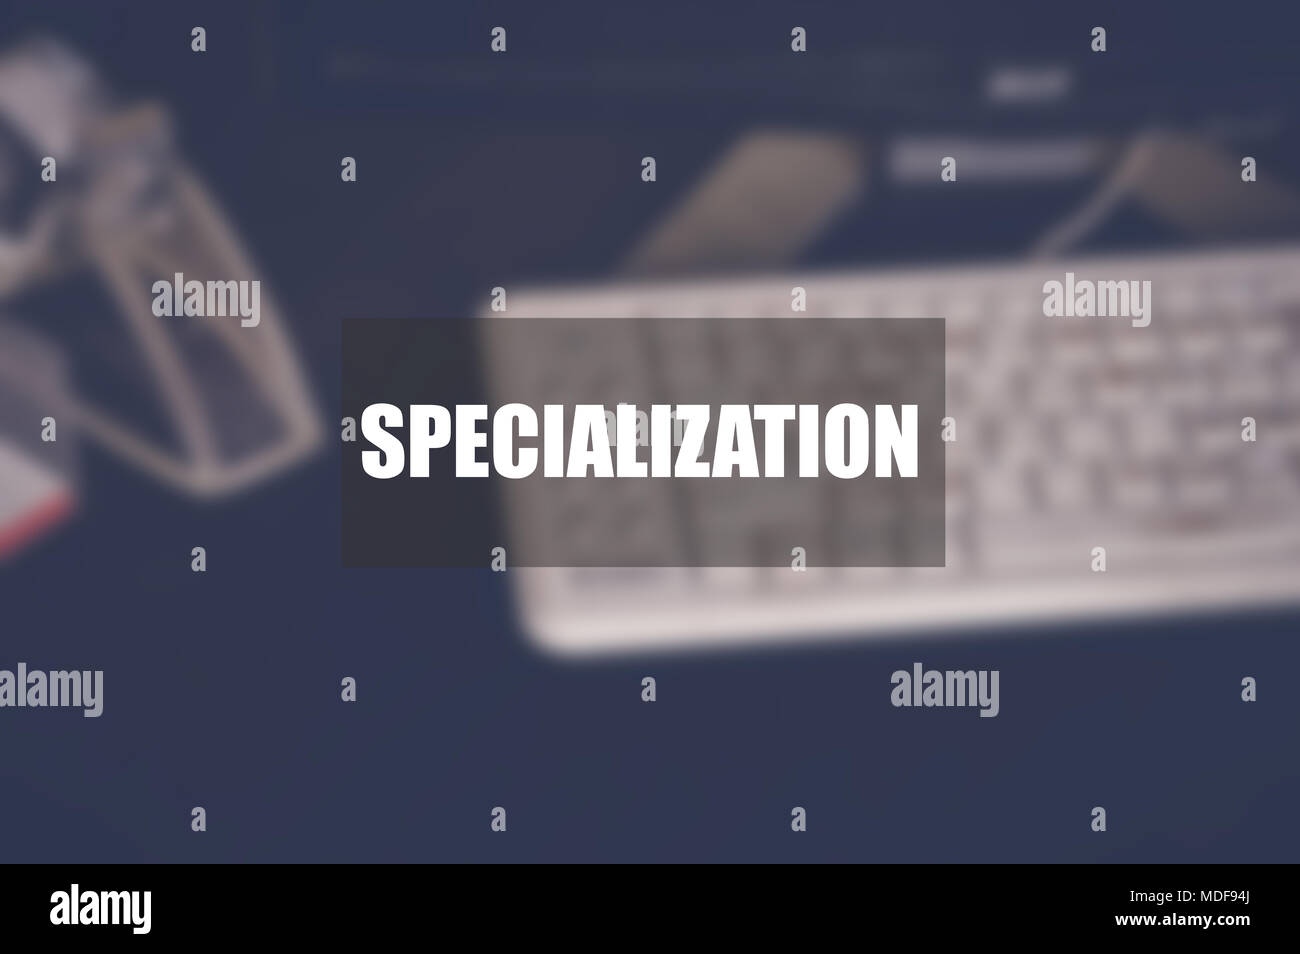 Specialization word with blurring business background - Stock Image